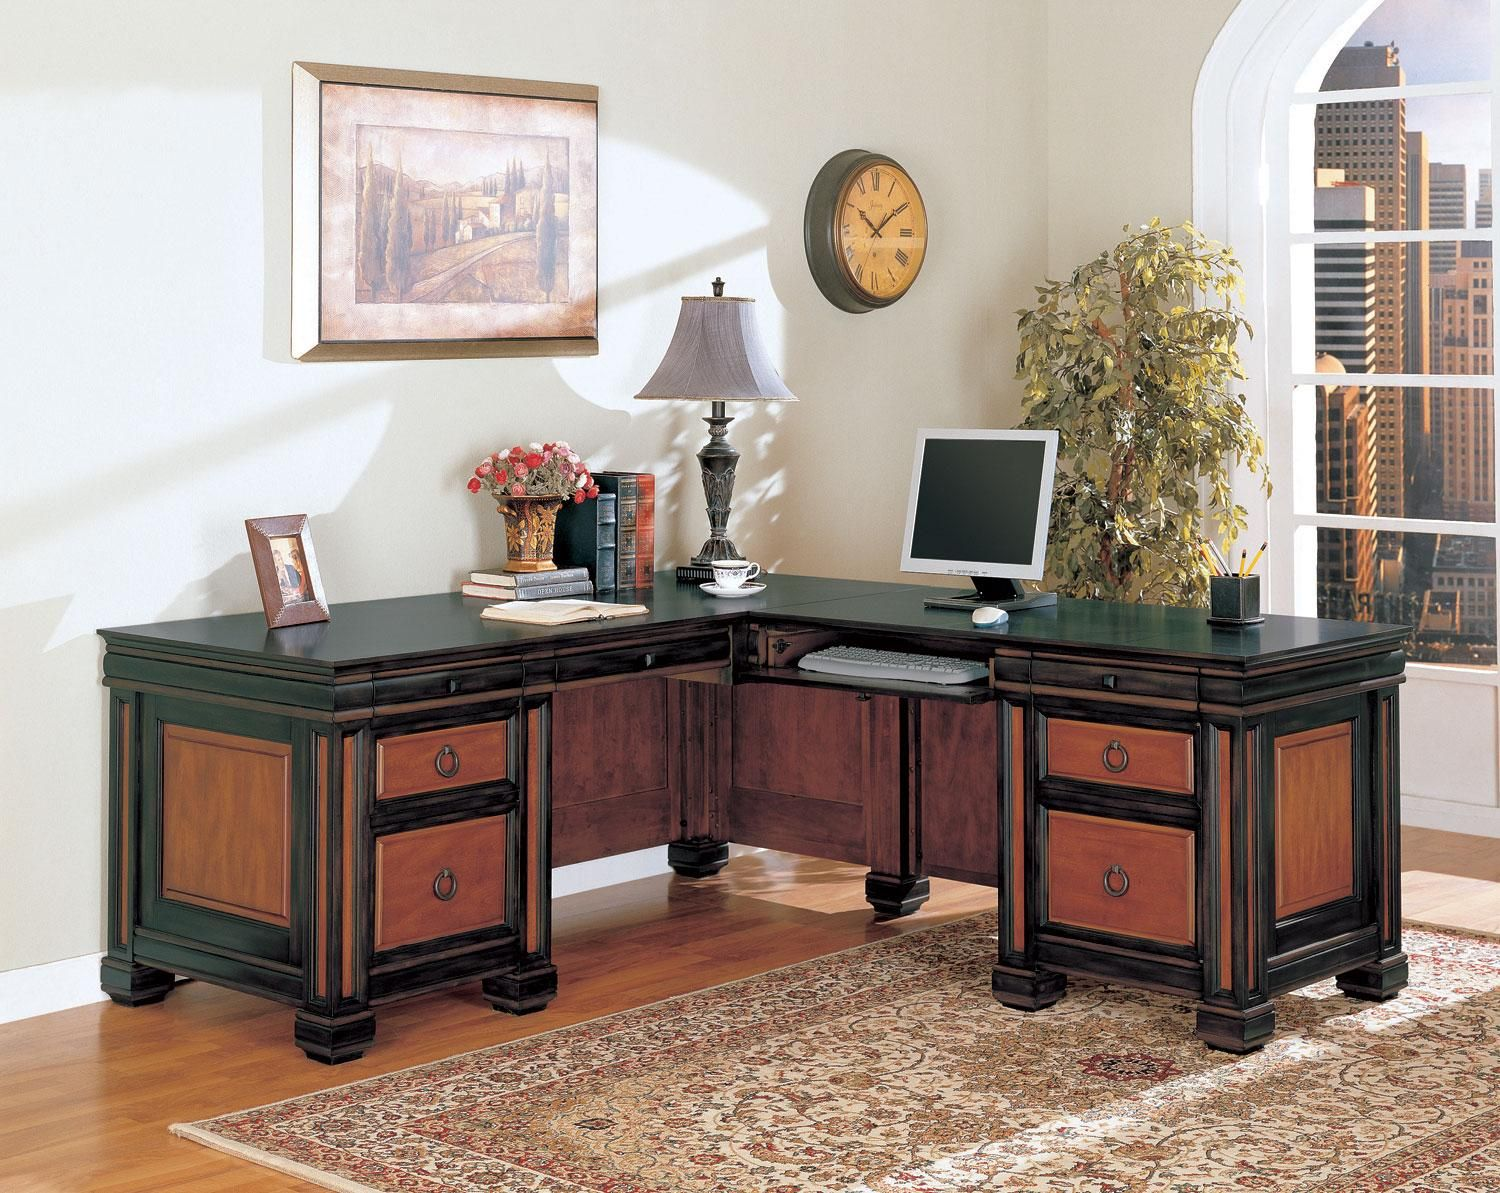 Wonderfull home office furniture near me contemporary